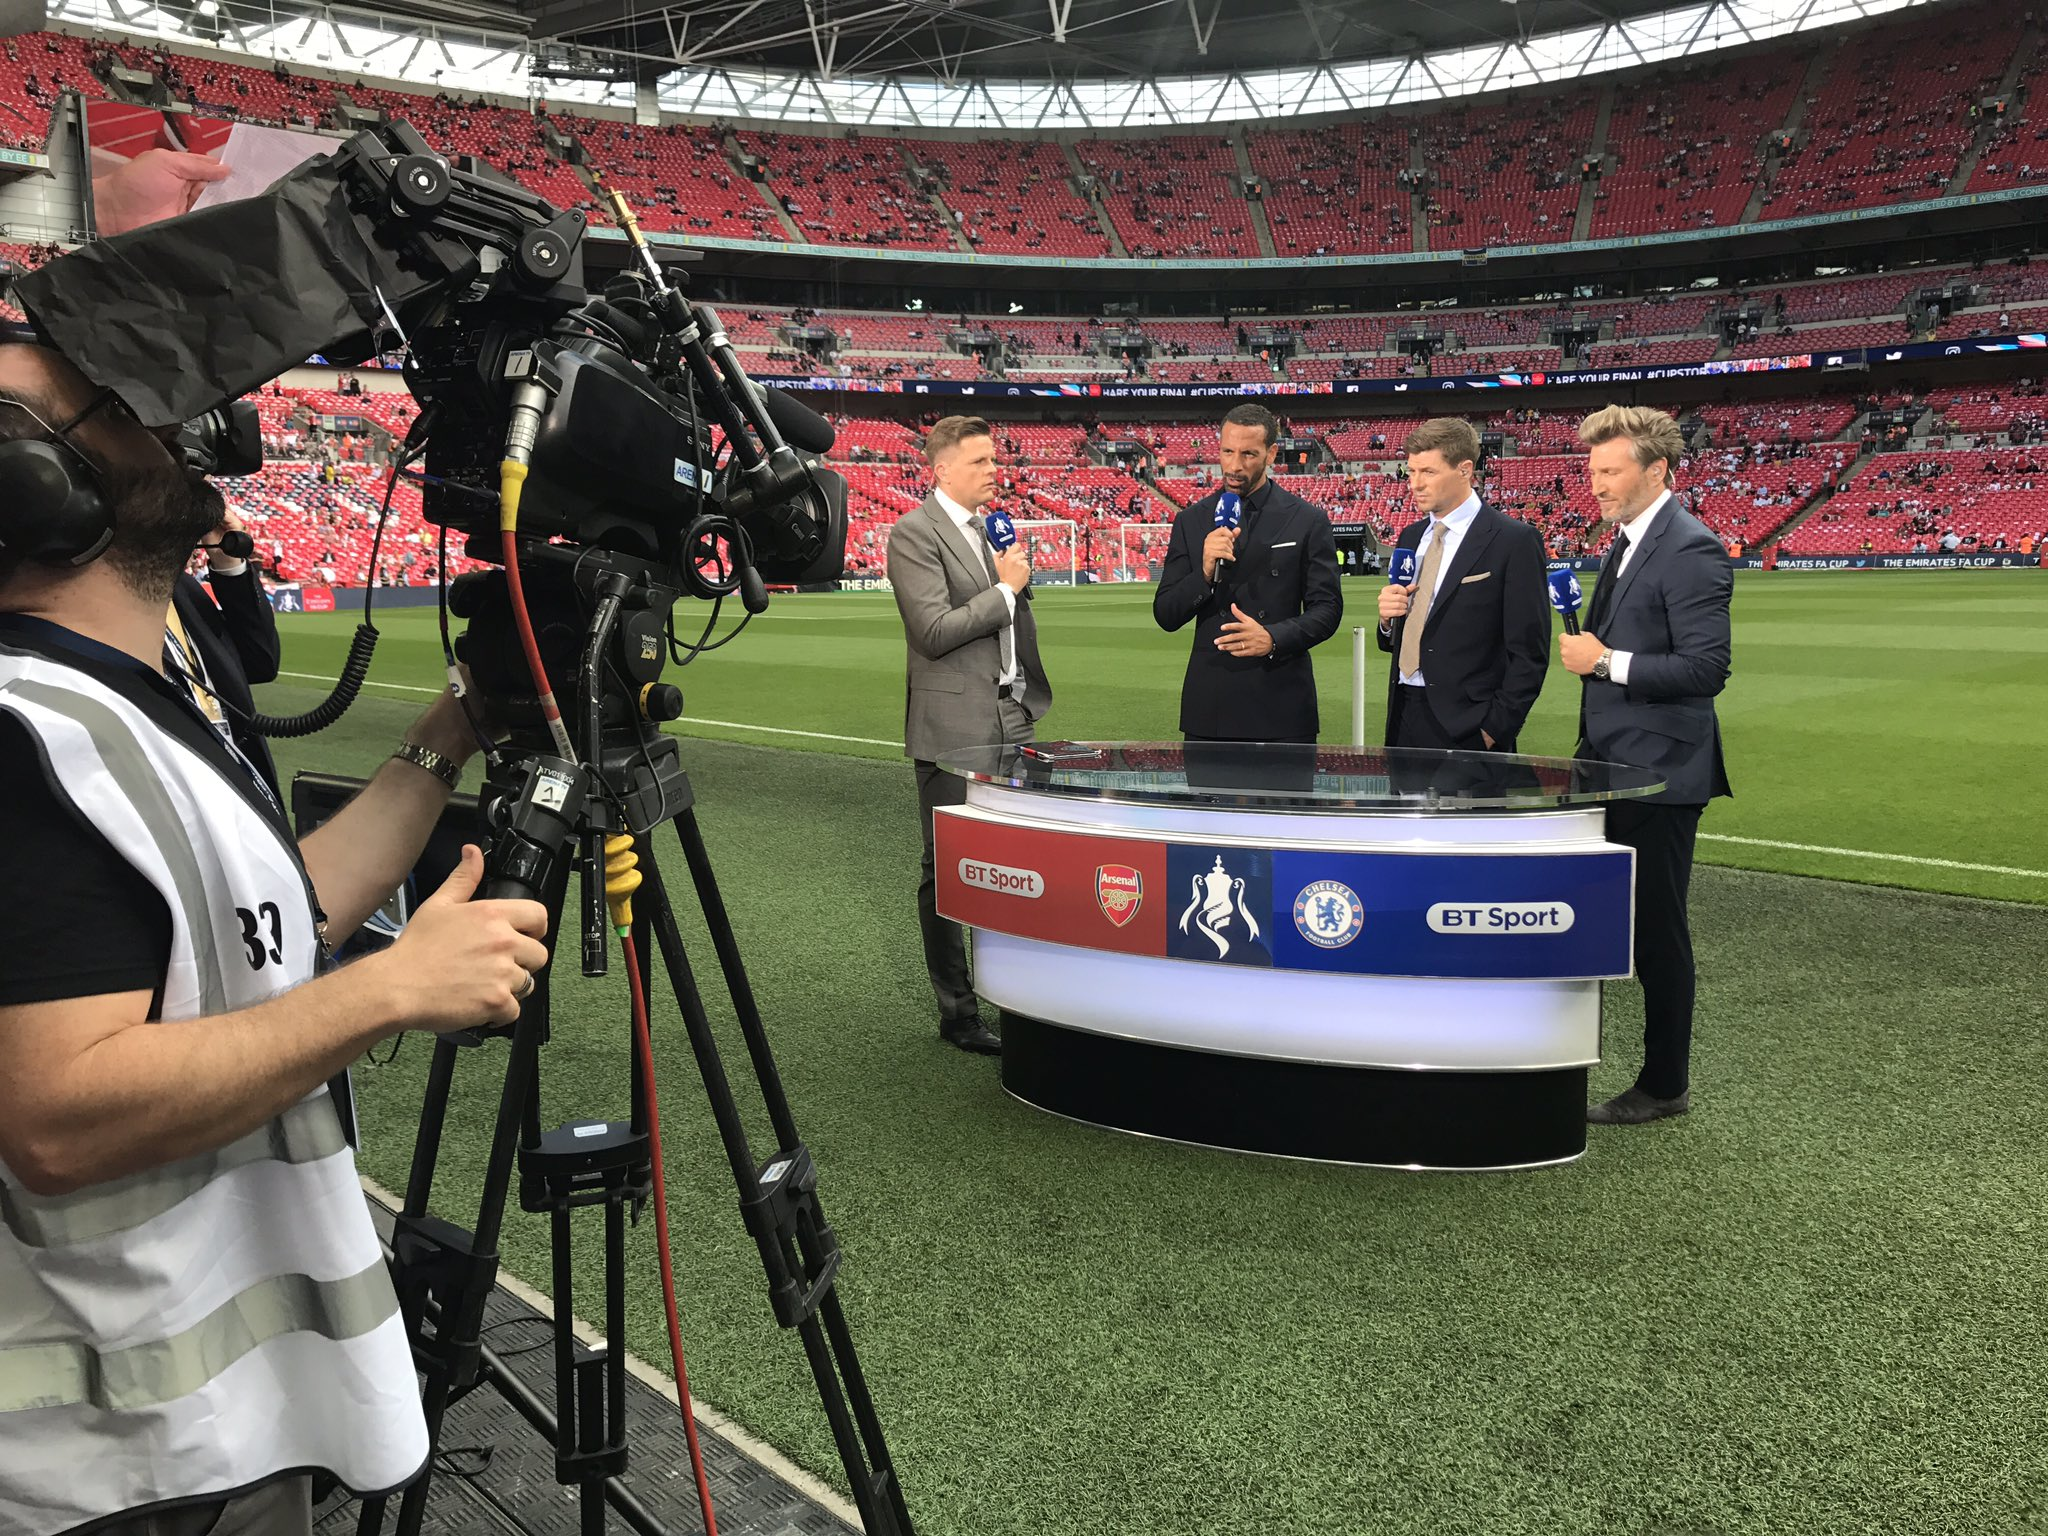 We are now LIVE on @btsportfootball #FACupFinal day.. Arsenal vs Chelsea! Score Predictions?! https://t.co/ejVy0iwHrm